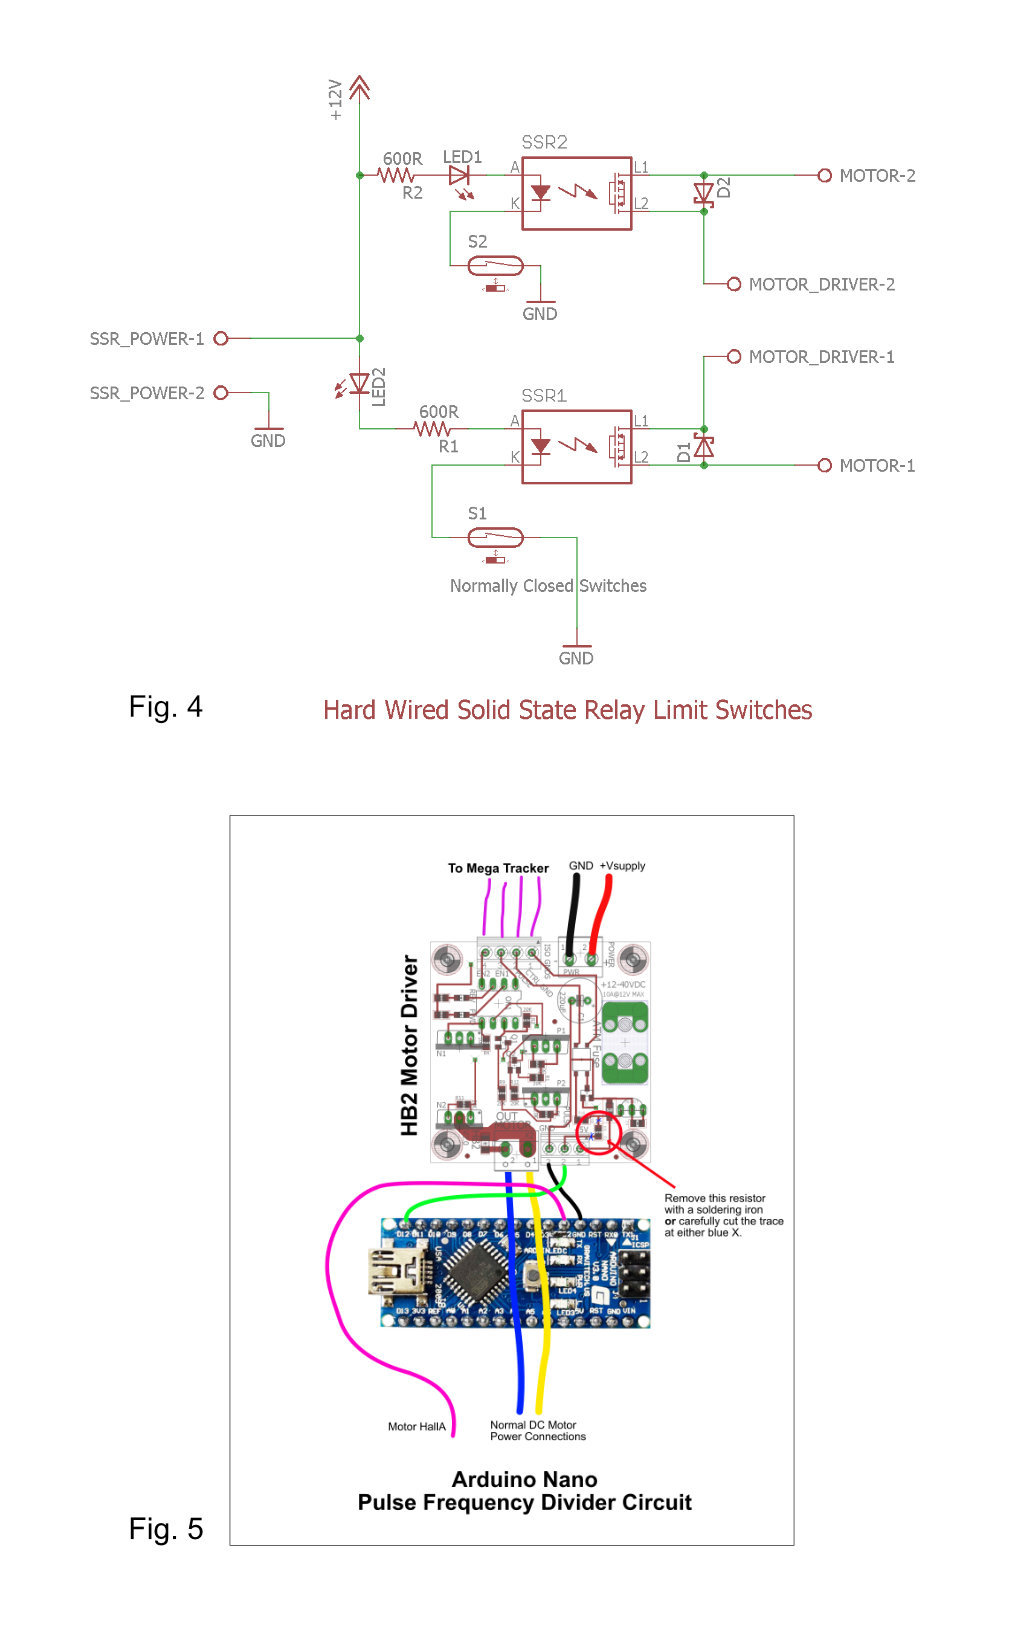 hight resolution of ssr hard limit switch schematic and pulse freqency divider